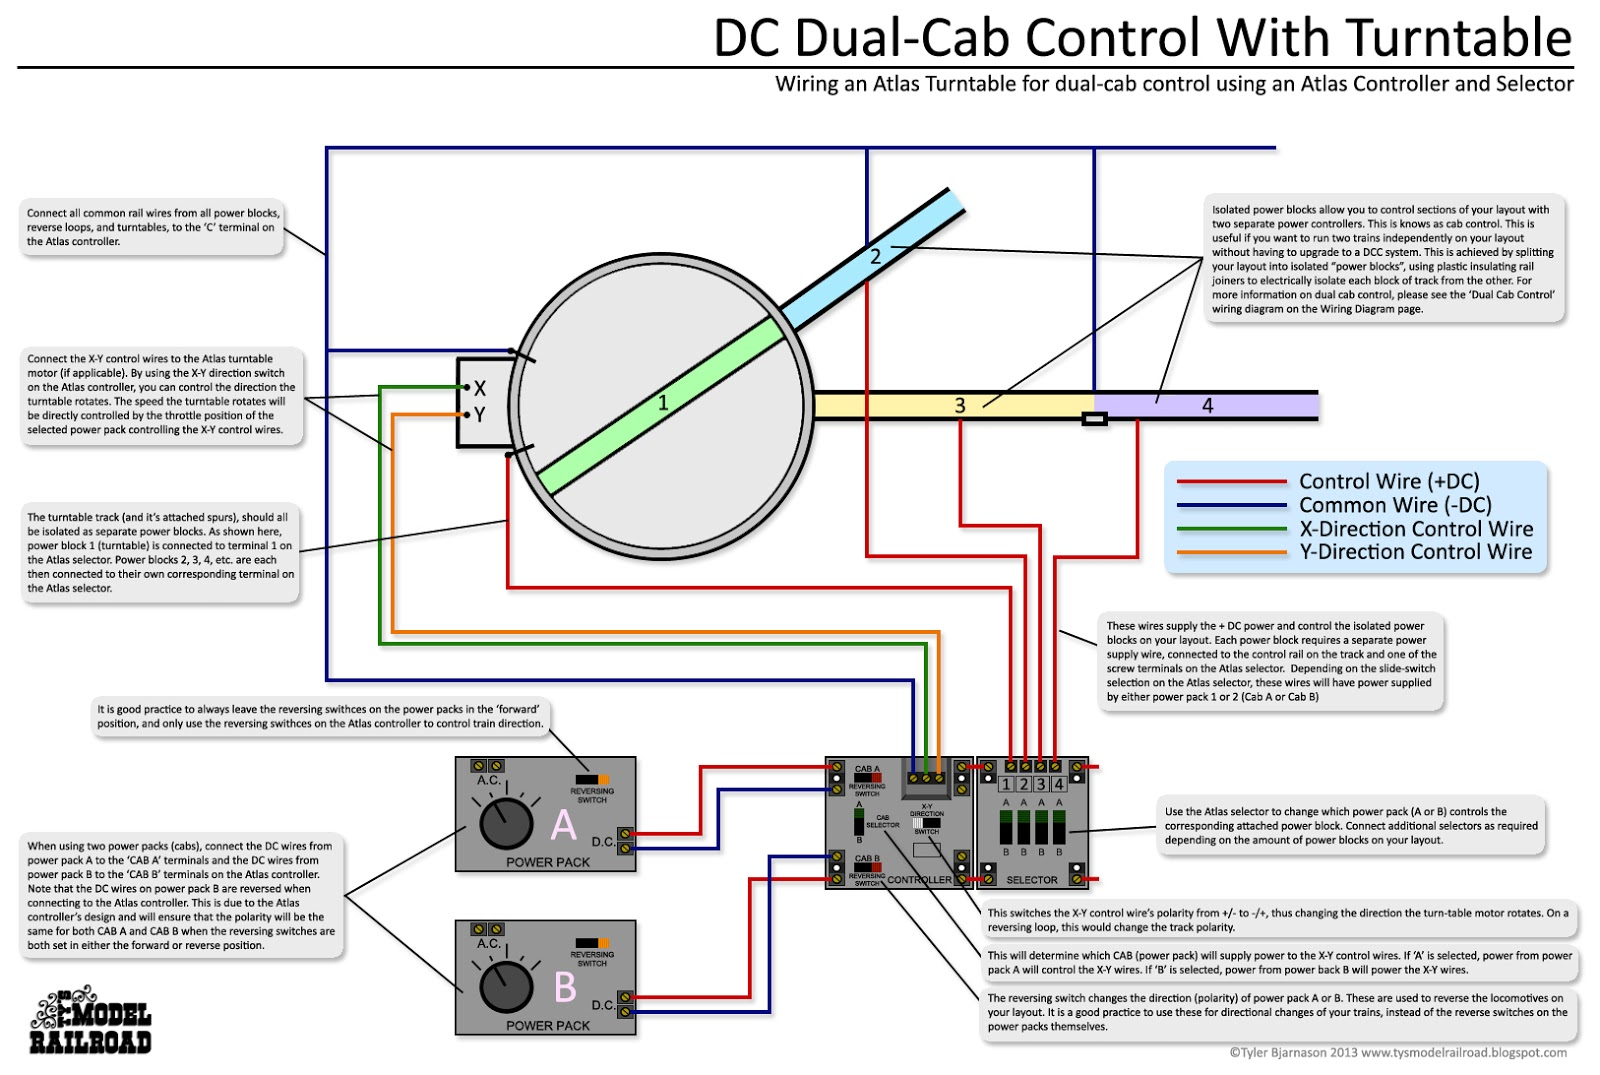 how to use dual cab control to power and operate a turntable and turntable motor using [ 1600 x 1075 Pixel ]